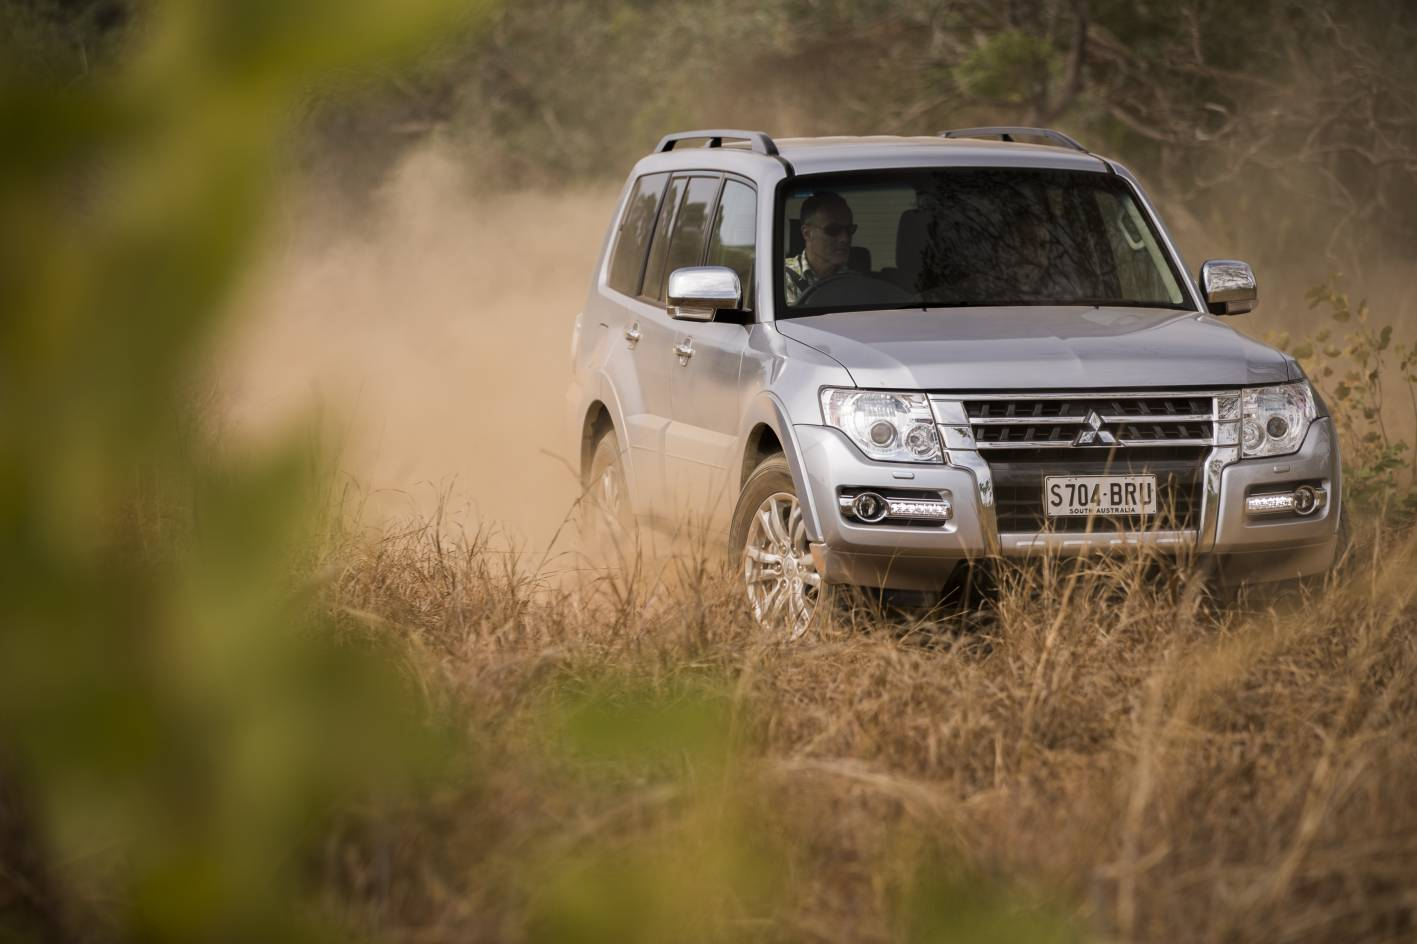 Mitsubishi Pajero recall sparks call for mandatory data sharing by AAAA